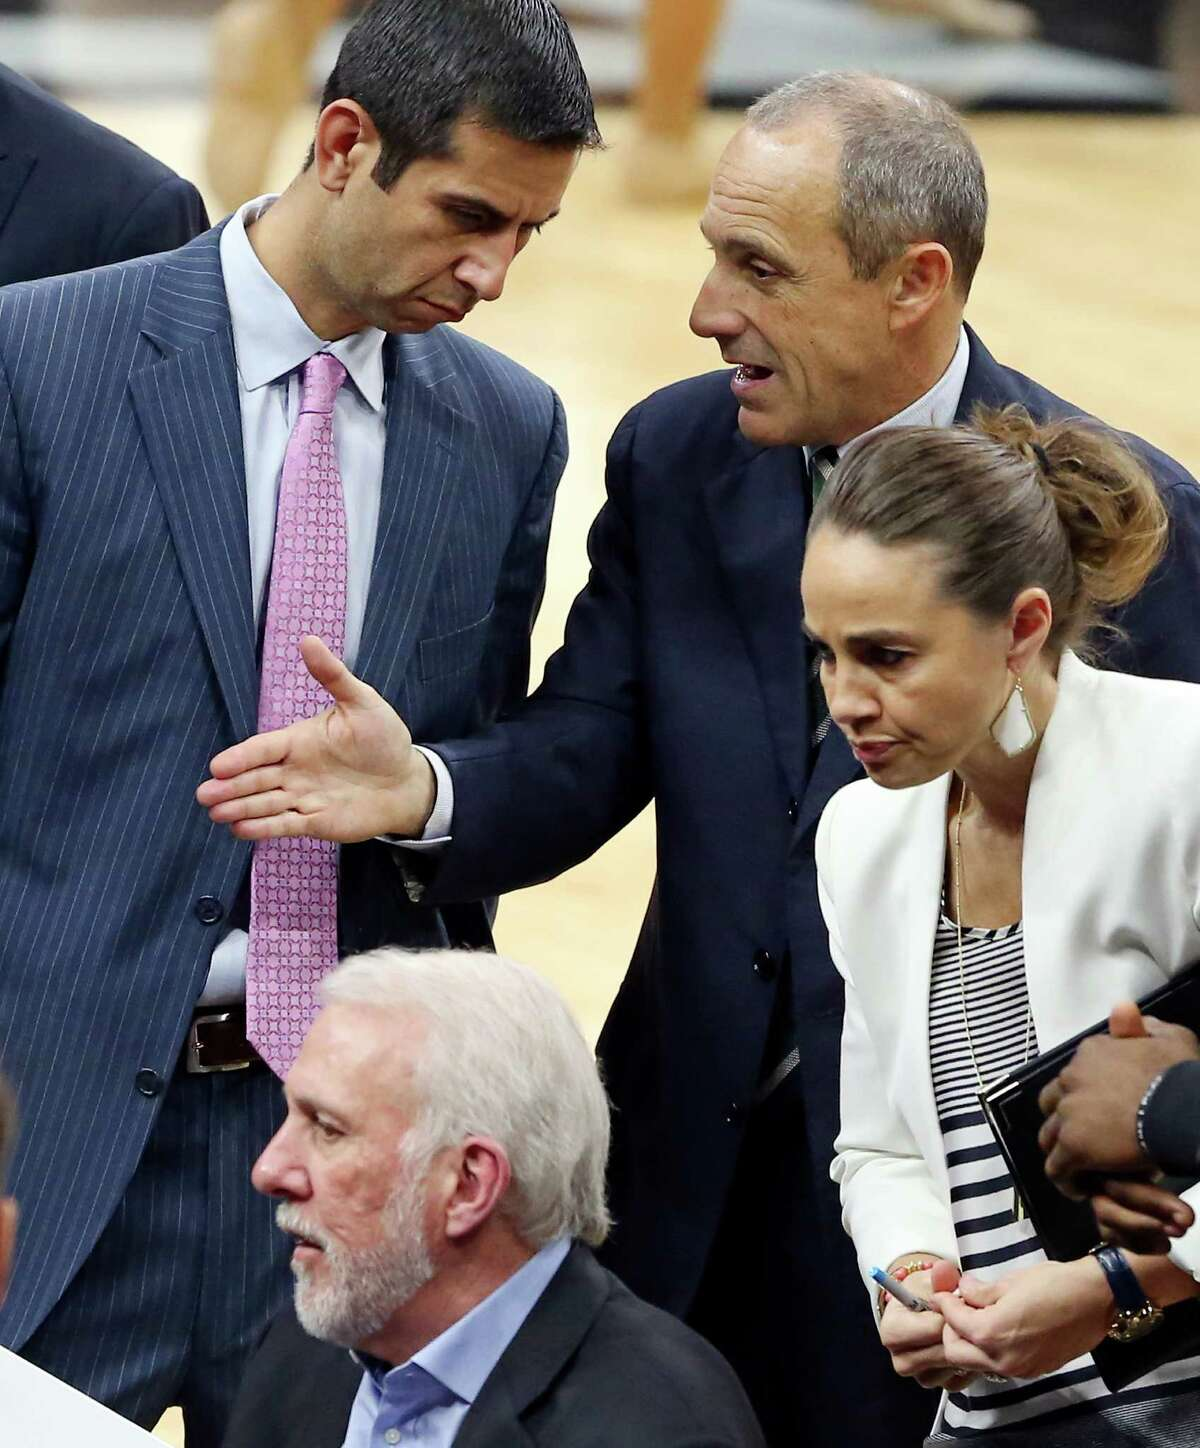 San Antonio Spurs assistant coaches James Borrego (from left clockwise) and Ettore Messina talk as assistant coach Becky Hammon listens to head coach Gregg Popovich talk with players during second half action against the Atlanta Hawks Saturday Nov. 28, 2015 at the AT&T Center. The Spurs won 108-88.